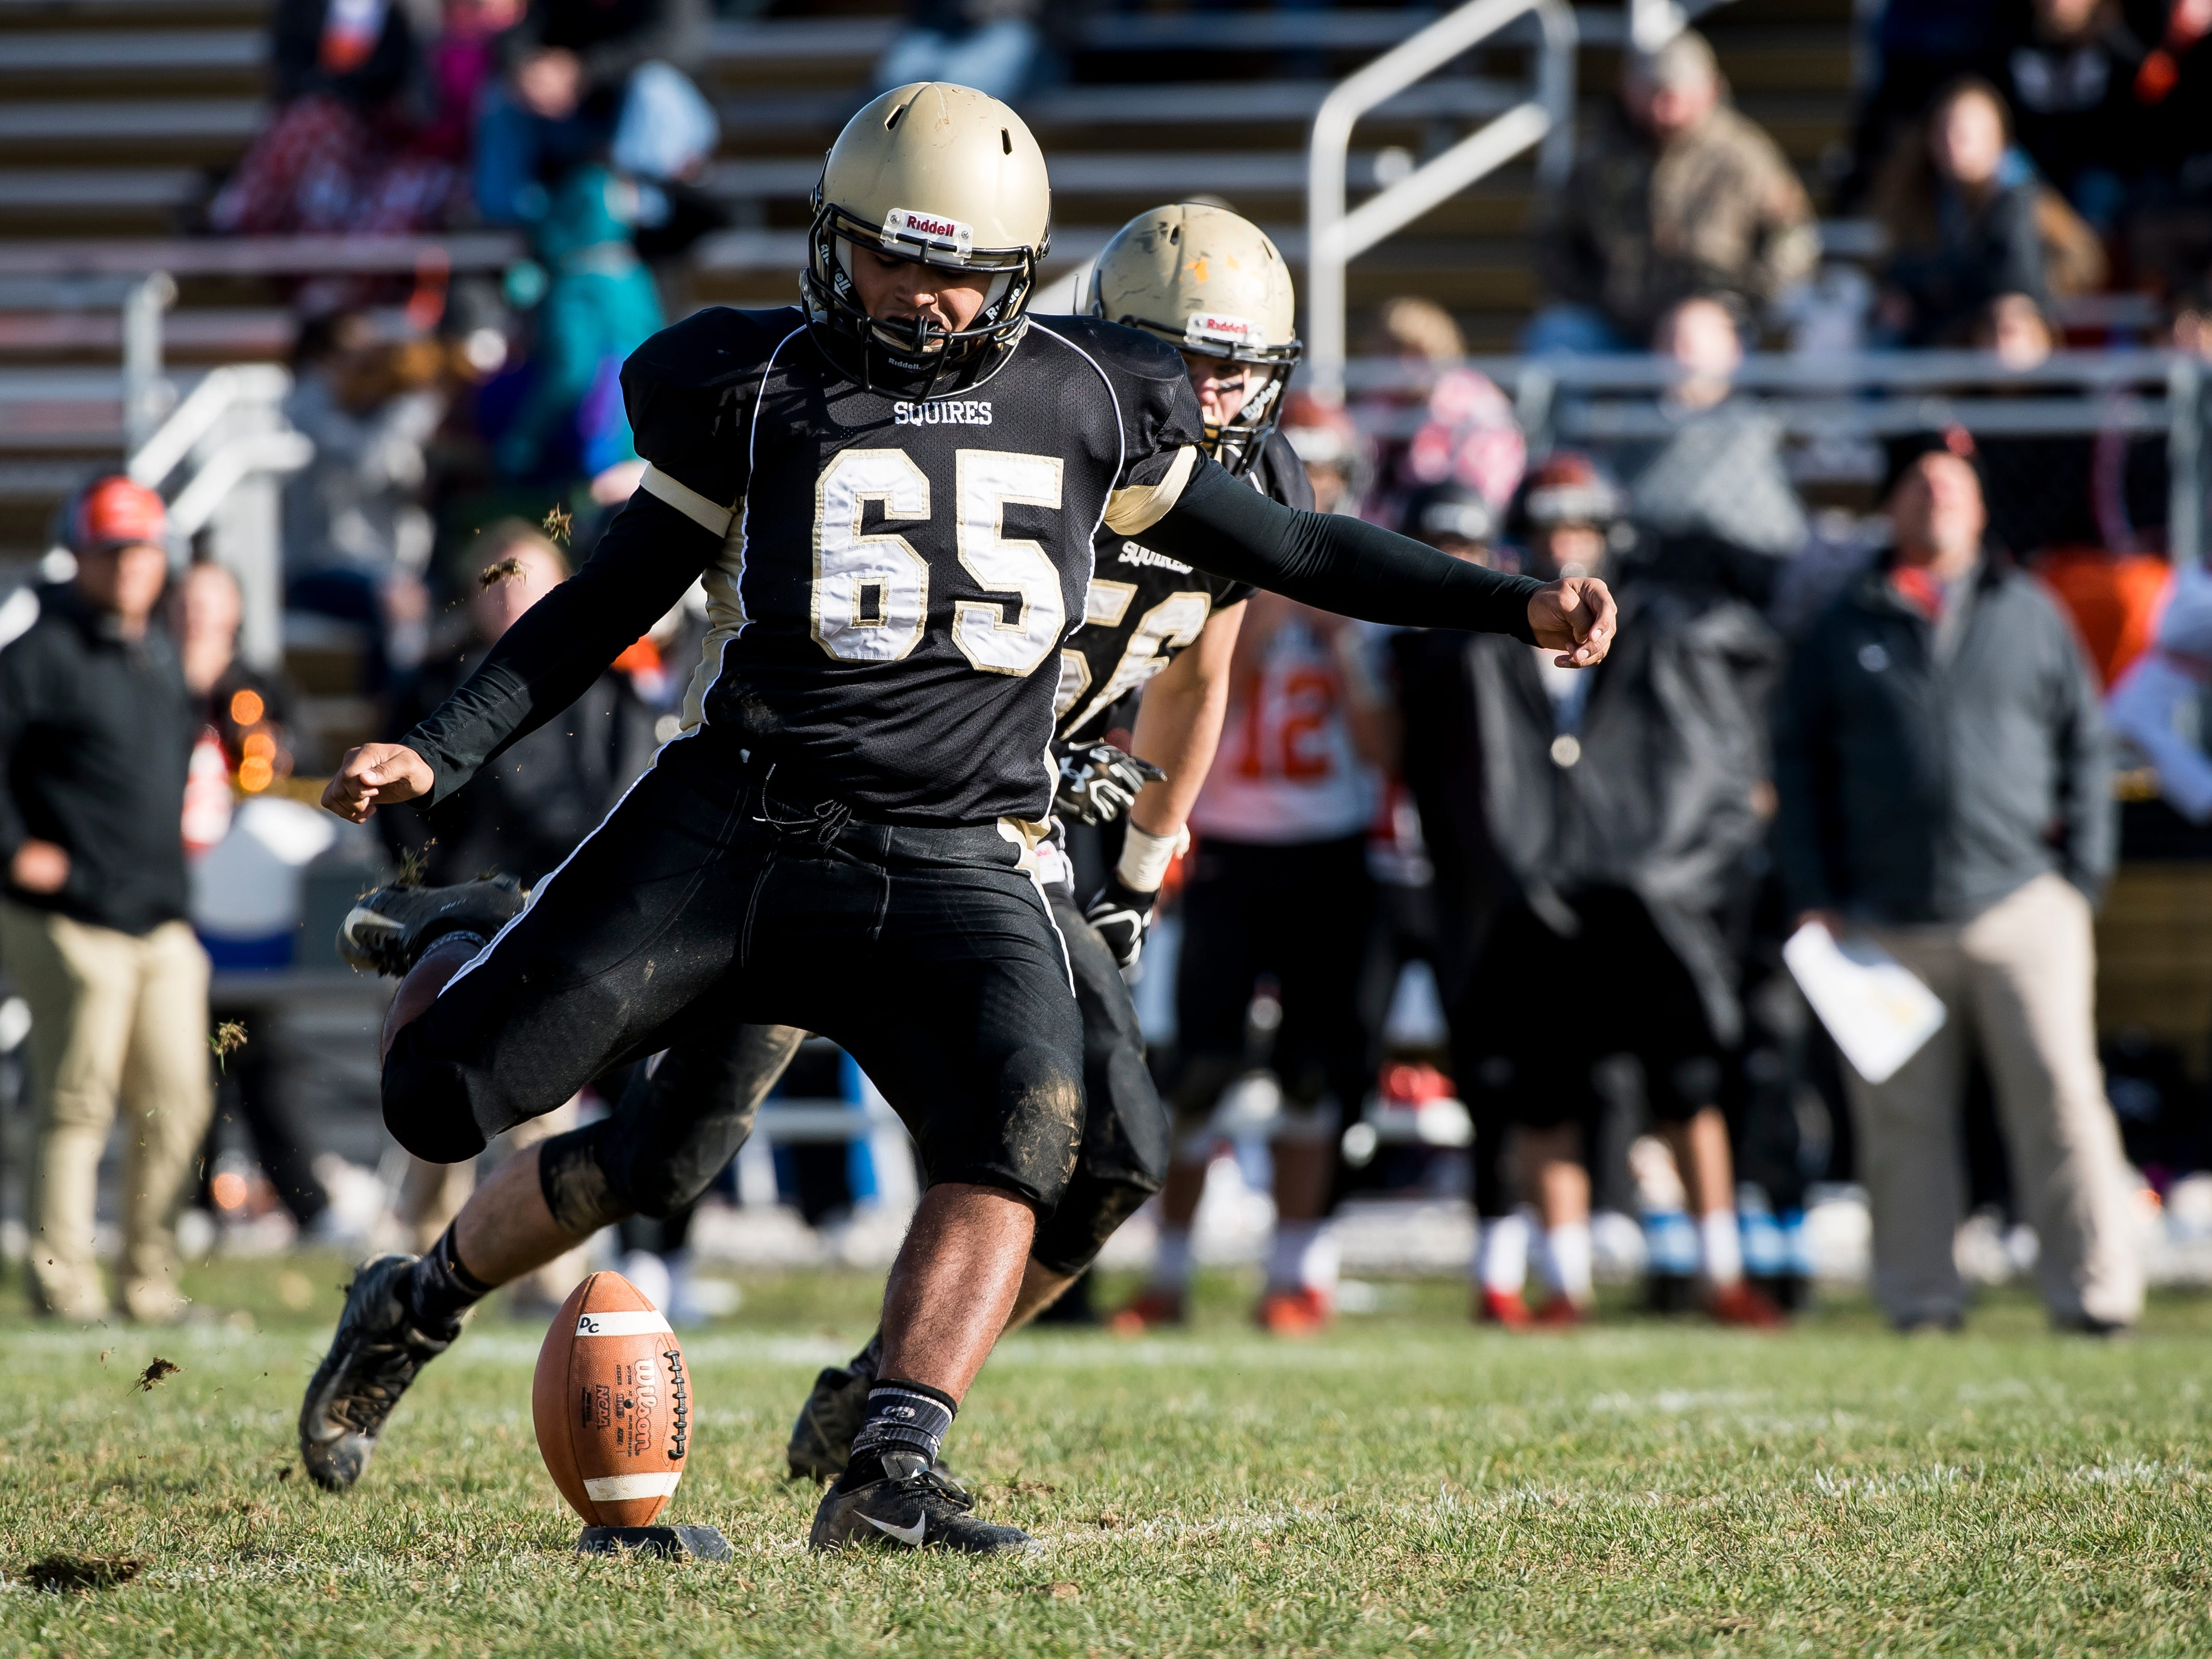 Delone Catholic's Tony Espinoza kicks off to Upper Dauphin during a District III Class 2A semifinal game on Saturday, November 3, 2018. The Squires won 48-23.